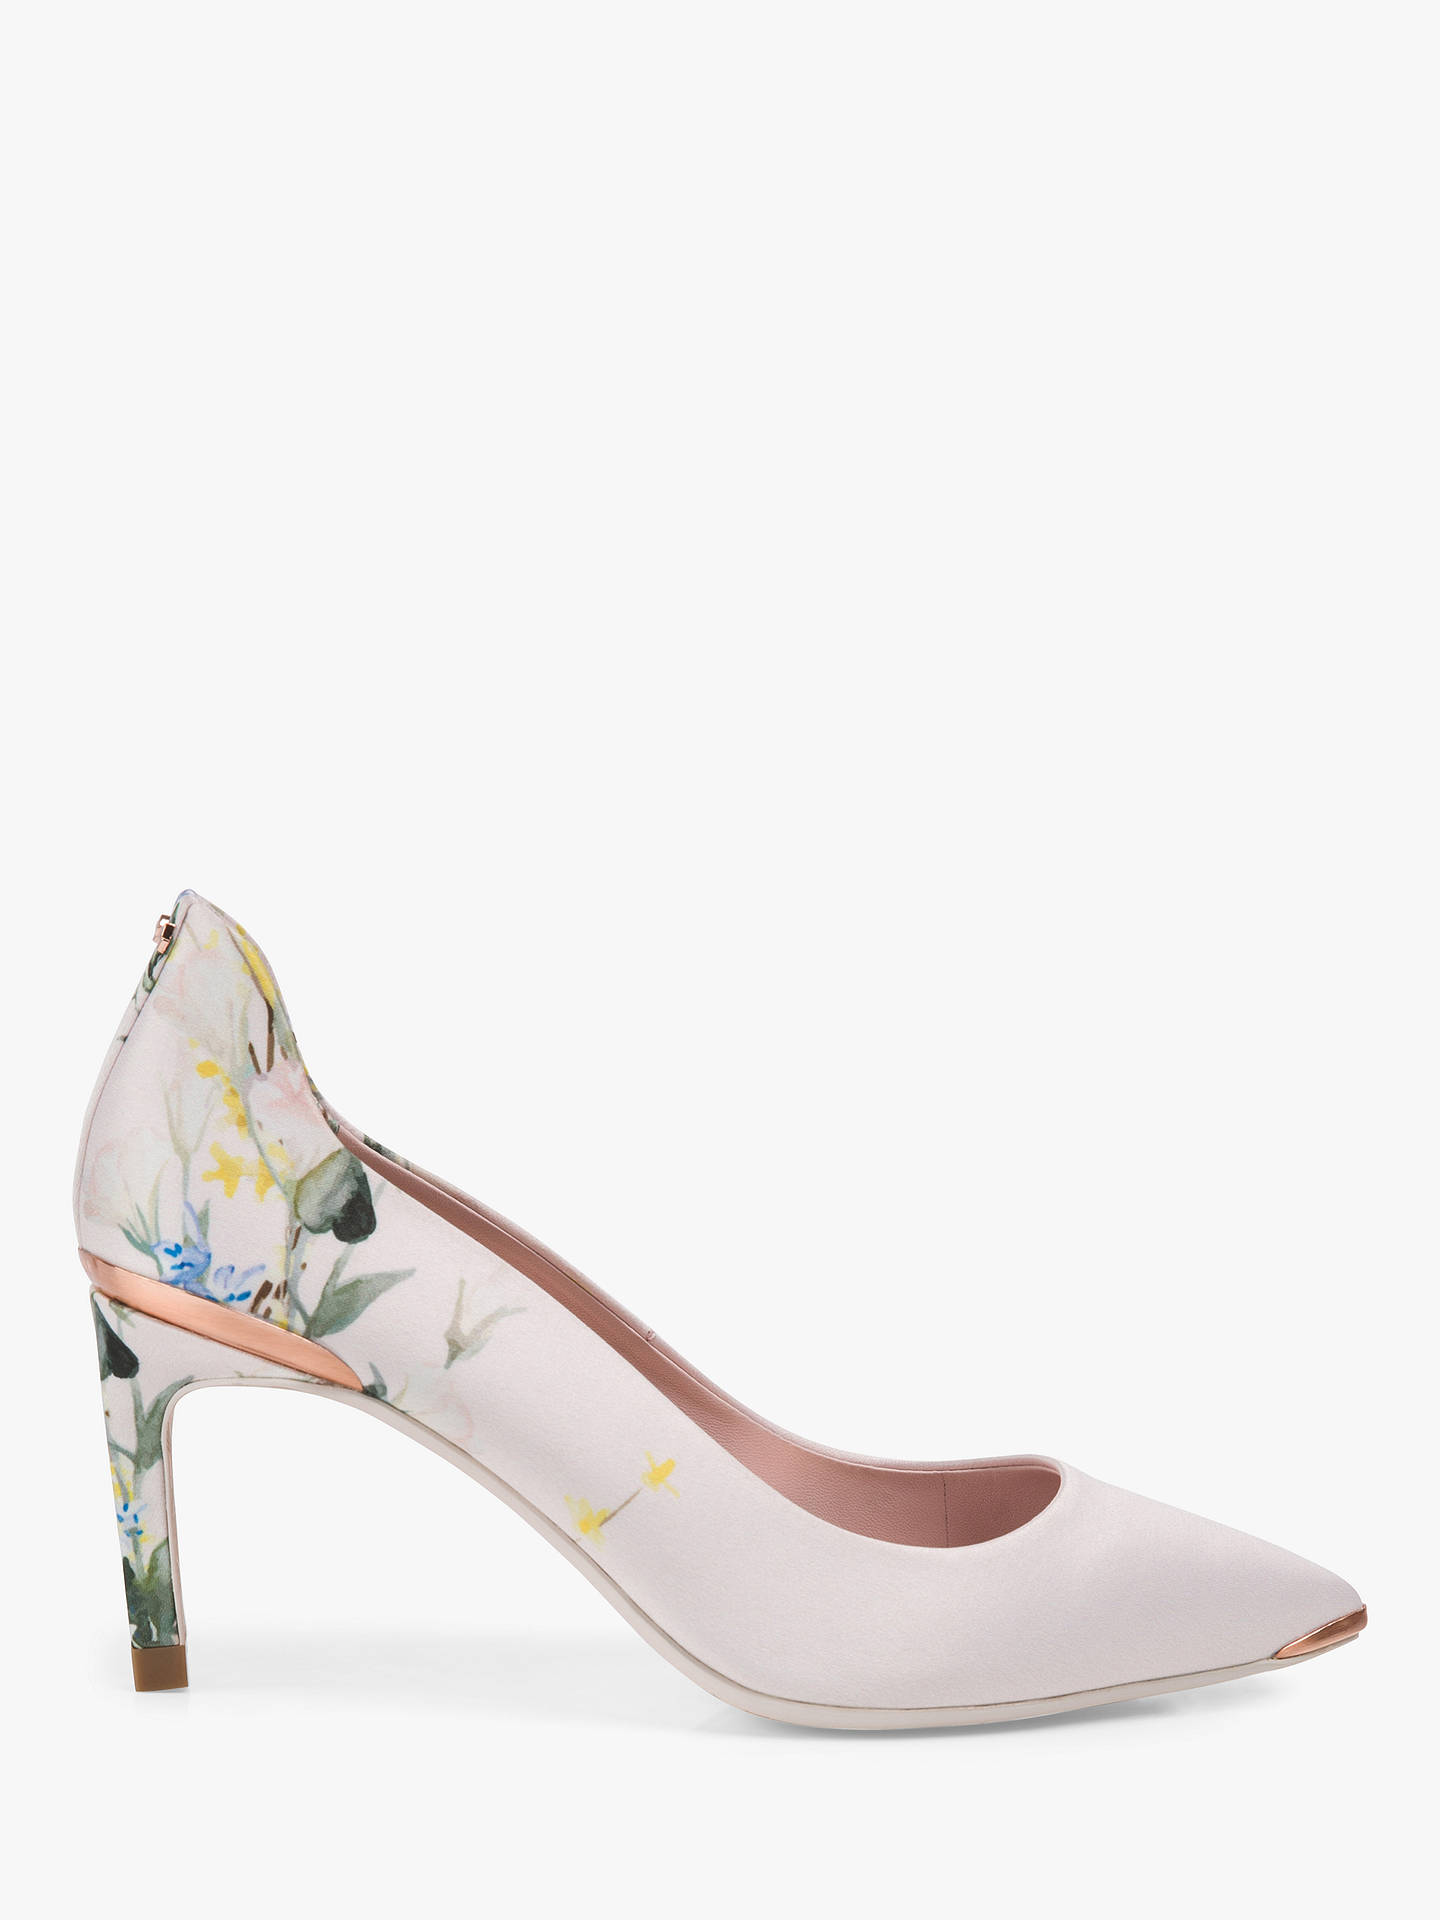 44c026bf5 Buy Ted Baker Eriinp Pointed High Heel Court Shoes